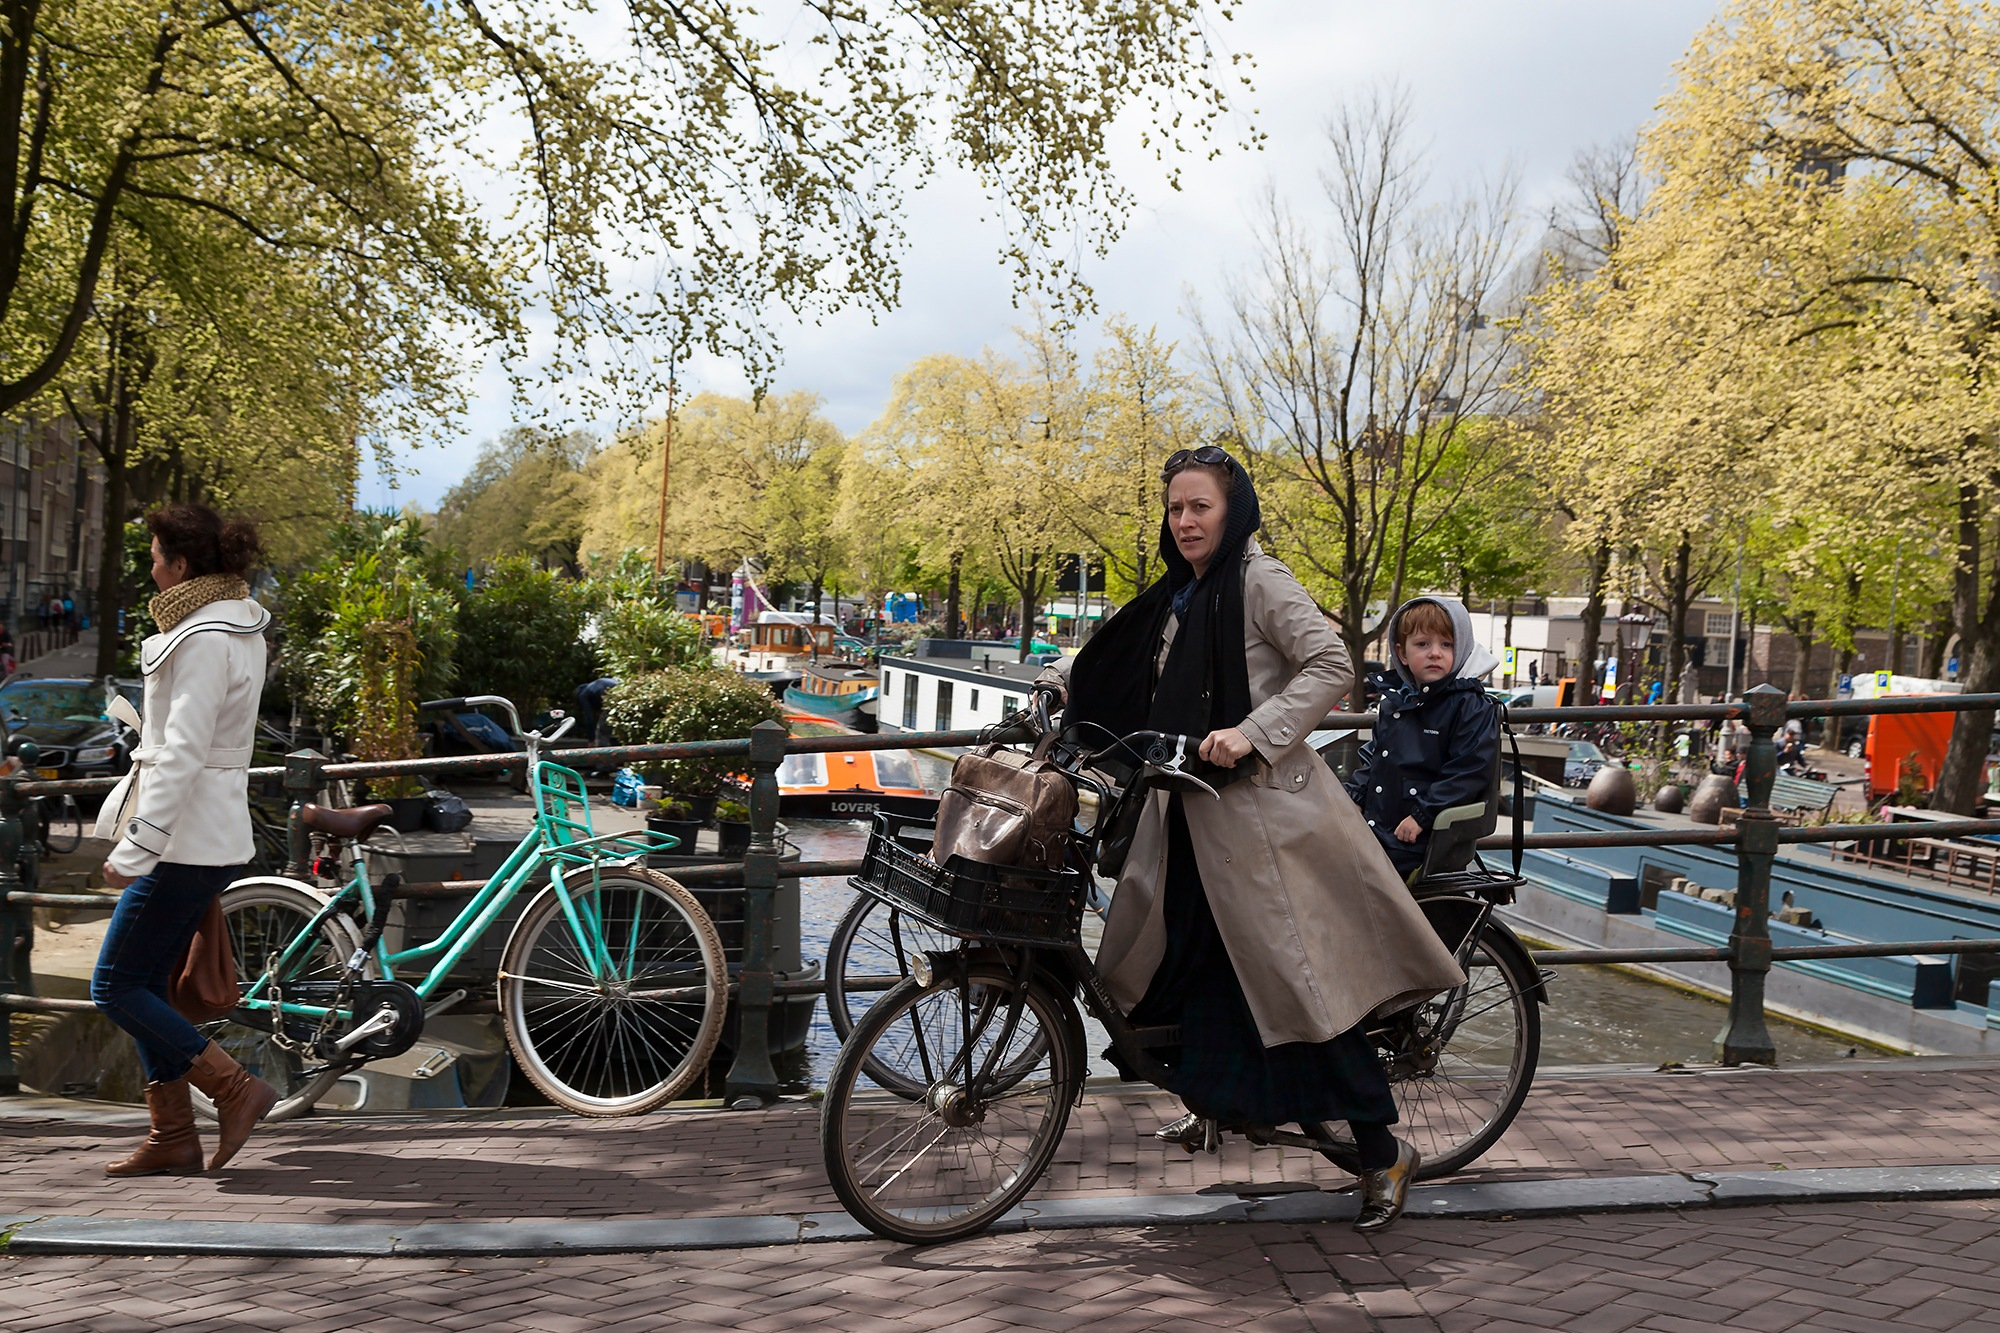 Streets in Holland by giovanna.picceri